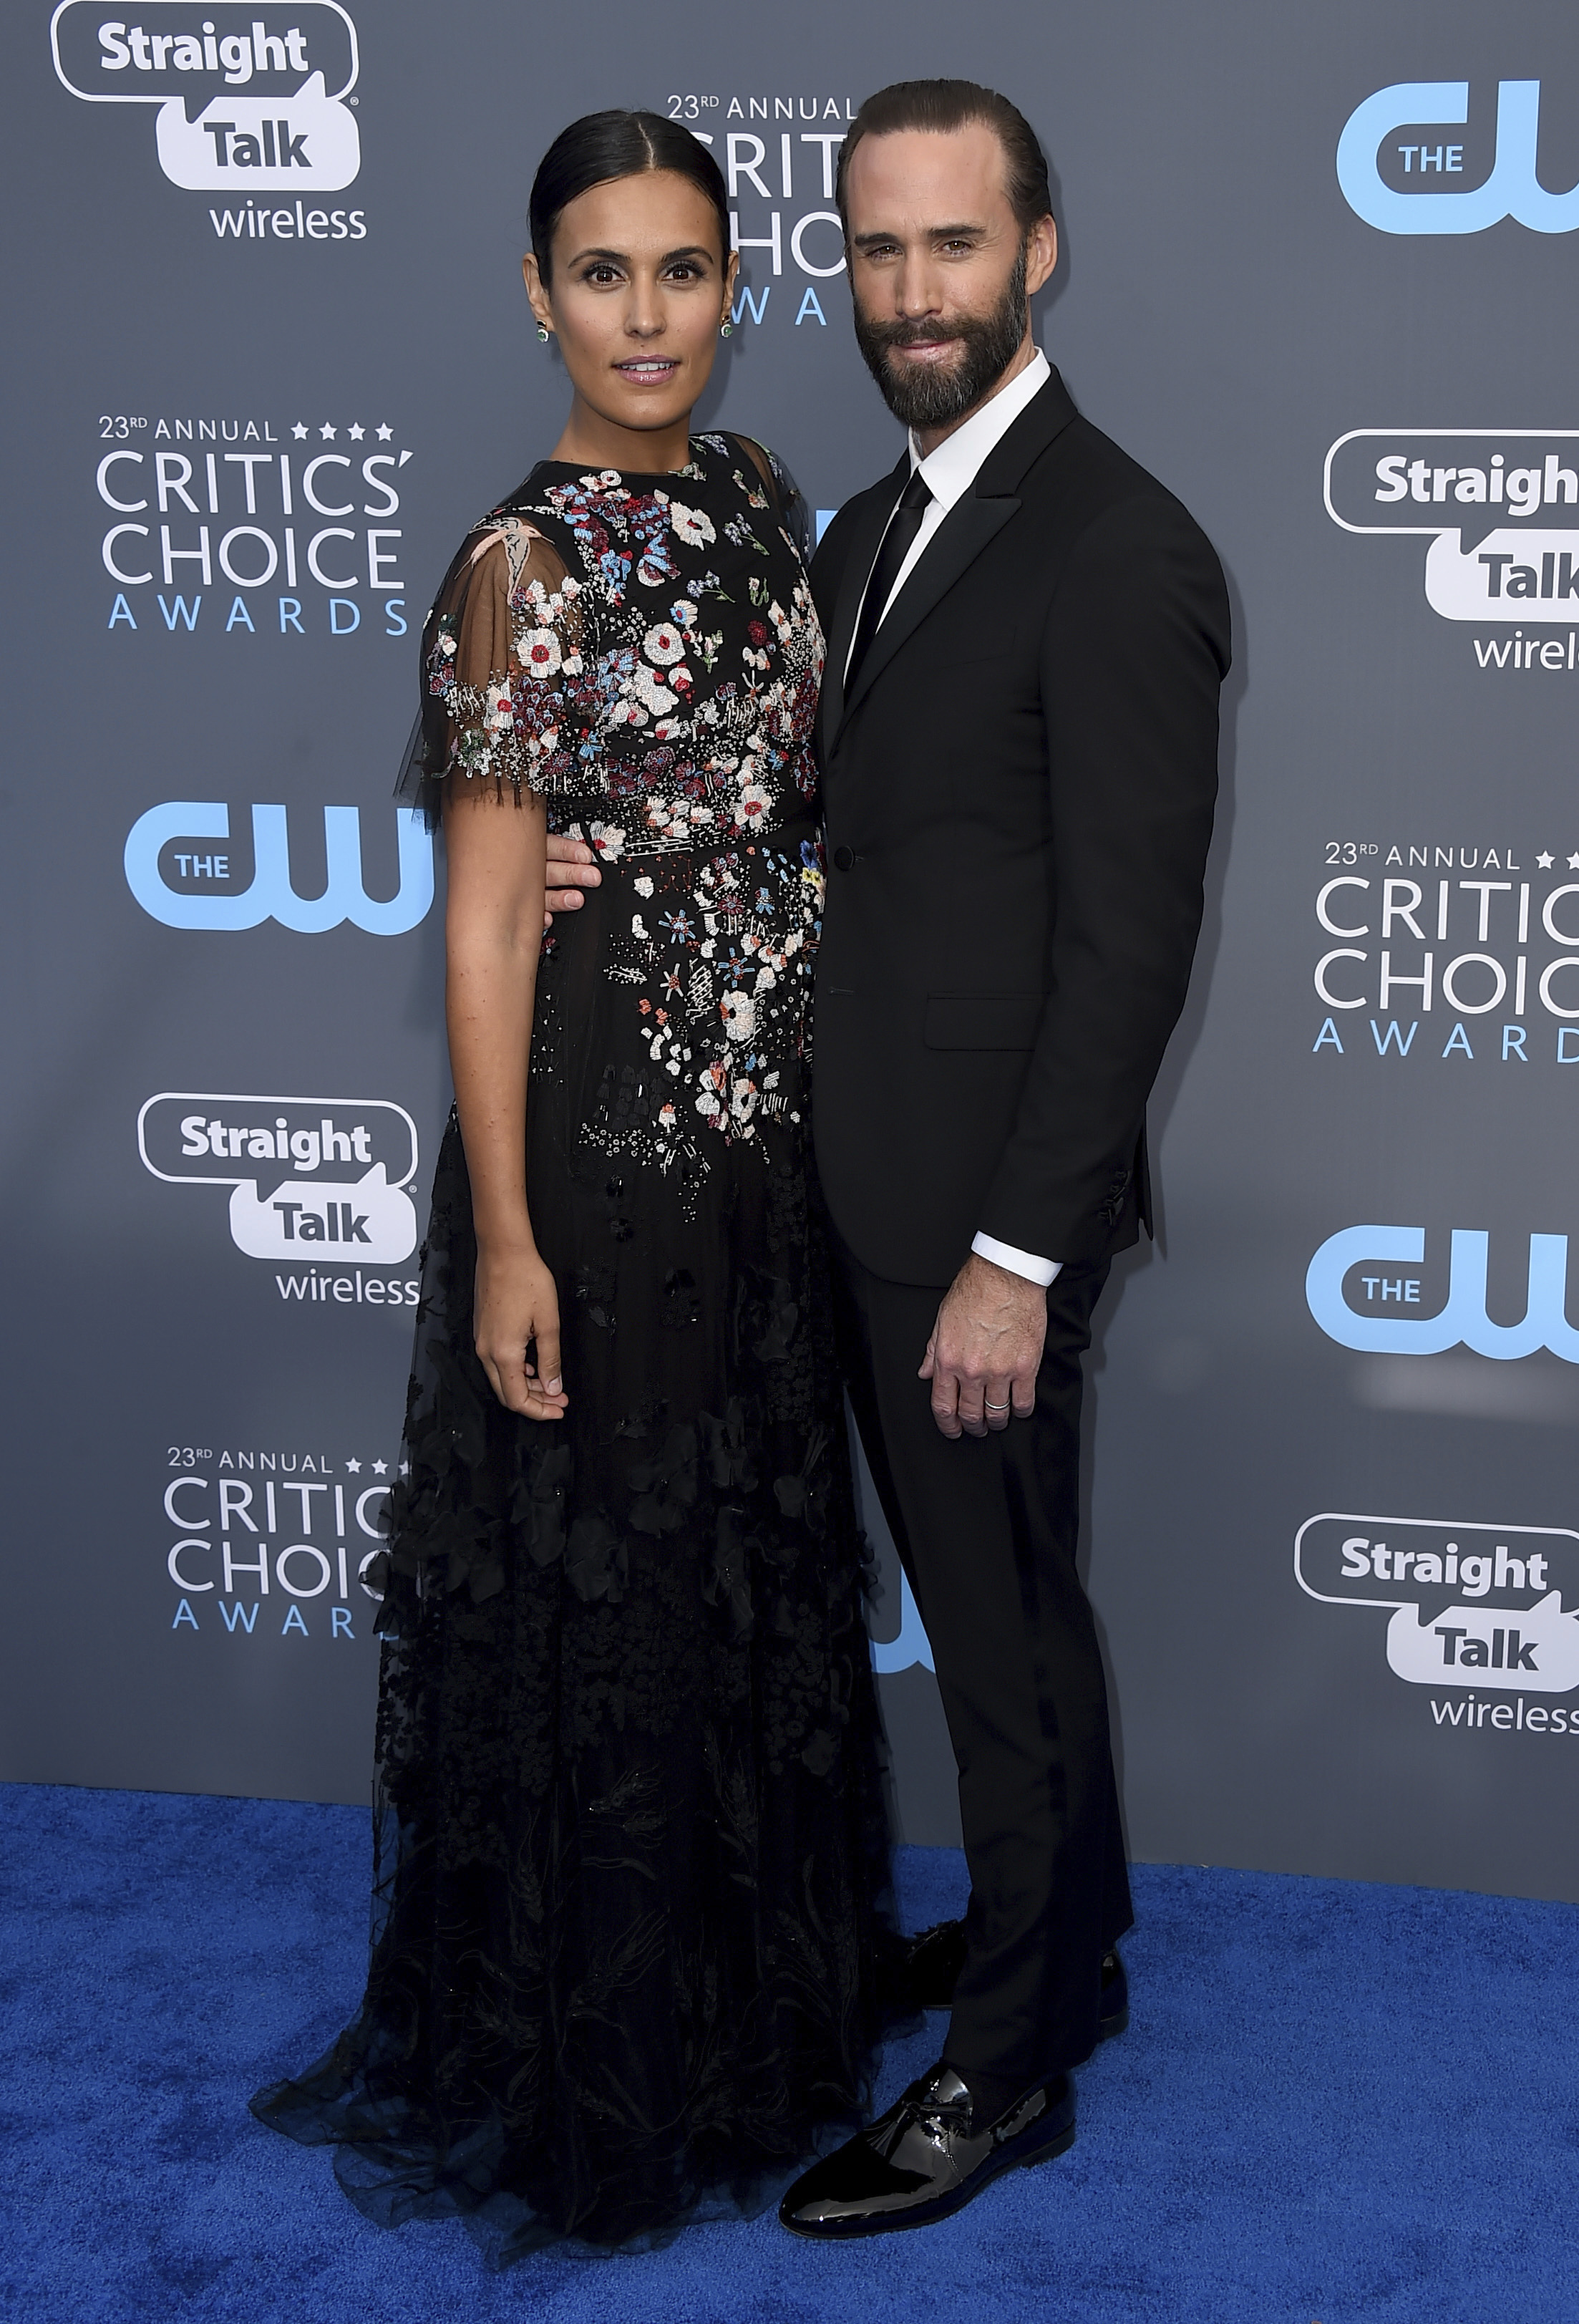 <div class='meta'><div class='origin-logo' data-origin='AP'></div><span class='caption-text' data-credit='Jordan Strauss/Invision/AP'>Maria Dolores Dieguez, left, and Joseph Fiennes arrive at the 23rd annual Critics' Choice Awards at the Barker Hangar on Thursday, Jan. 11, 2018, in Santa Monica, Calif.</span></div>